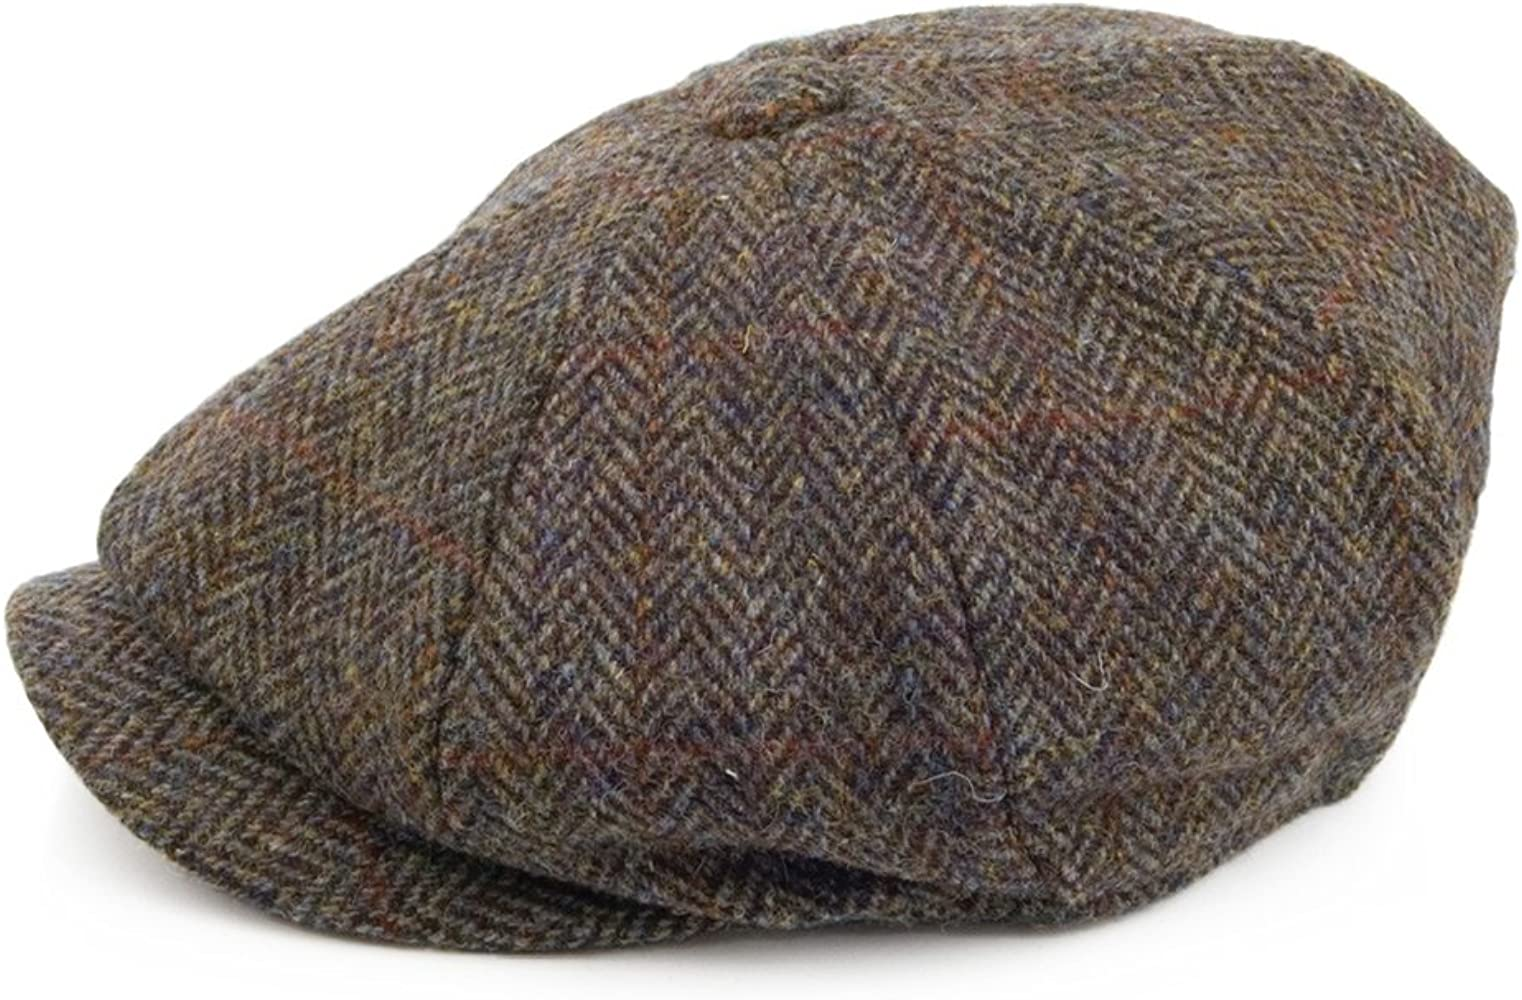 Gorra plana Newsboy Carloway de Tweed Harris de Failsworth - 61 ...